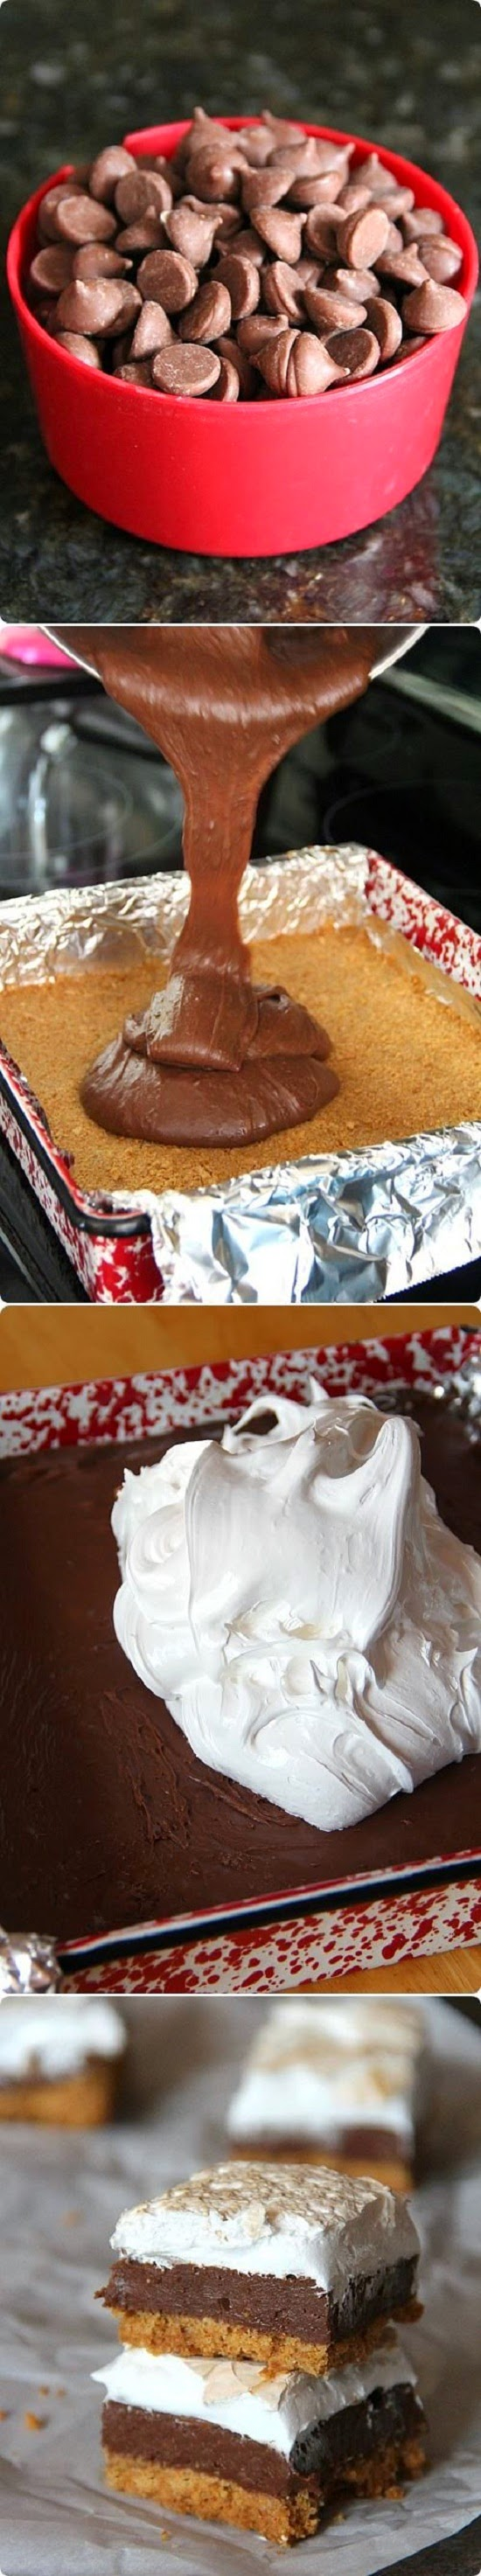 How To Make Smores Fudge Bars